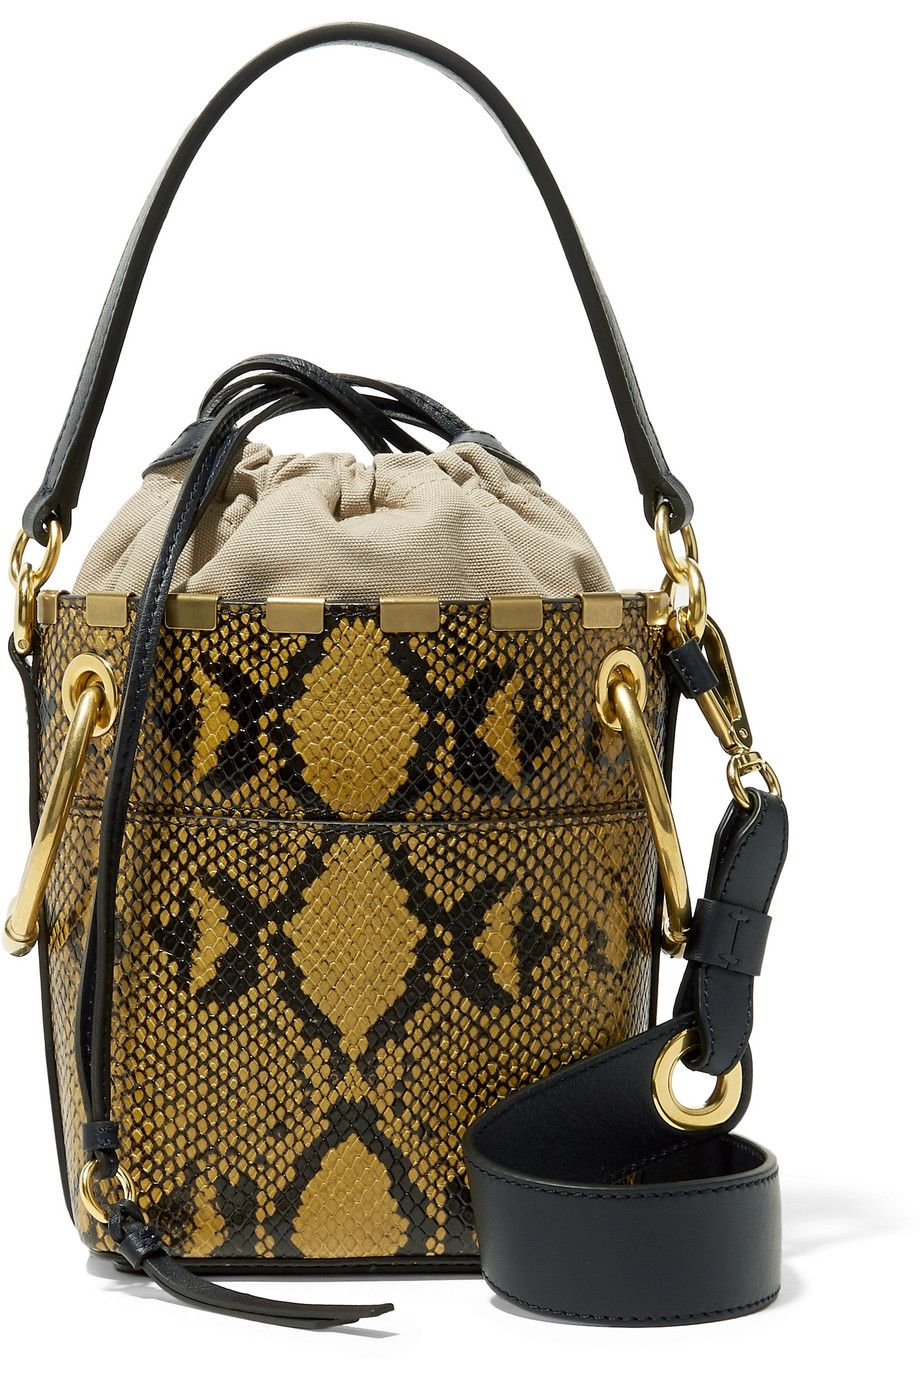 shop-chloe-roy-mini-snake-effect-leather-bucket-bag